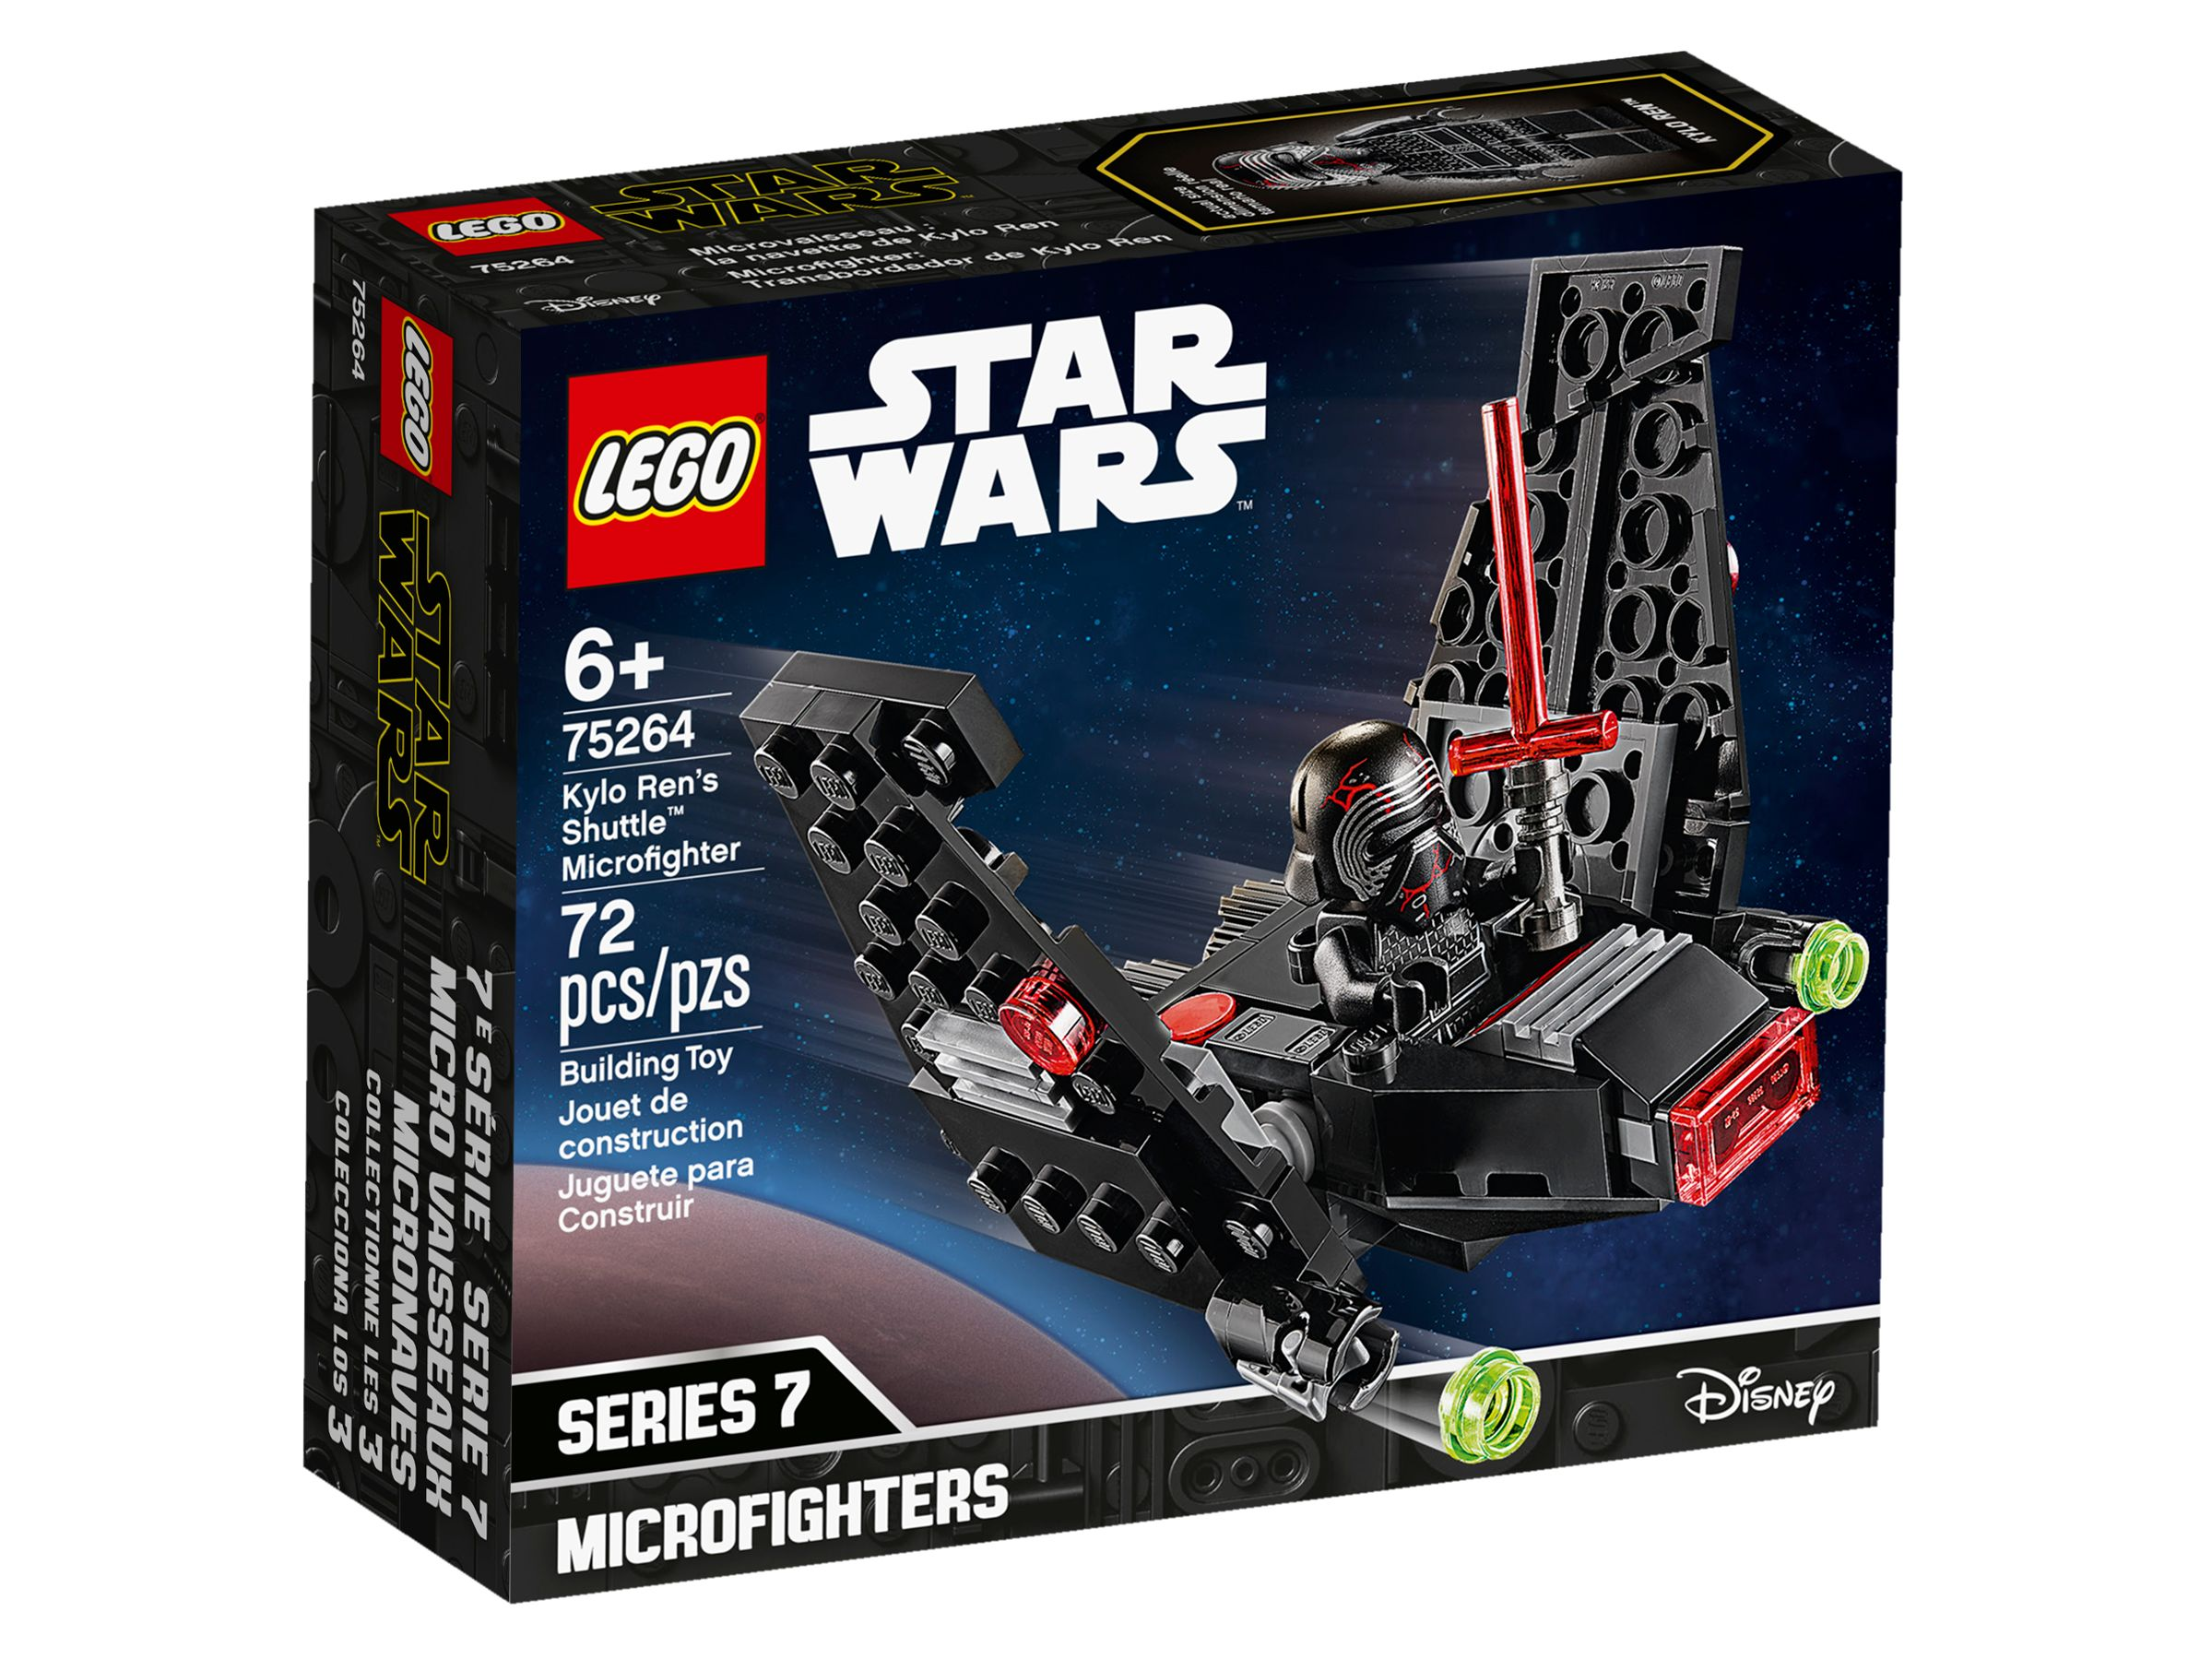 LEGO Star Wars 75264 Kylo Rens Shuttle™ Microfighter LEGO_75264_alt1.jpg